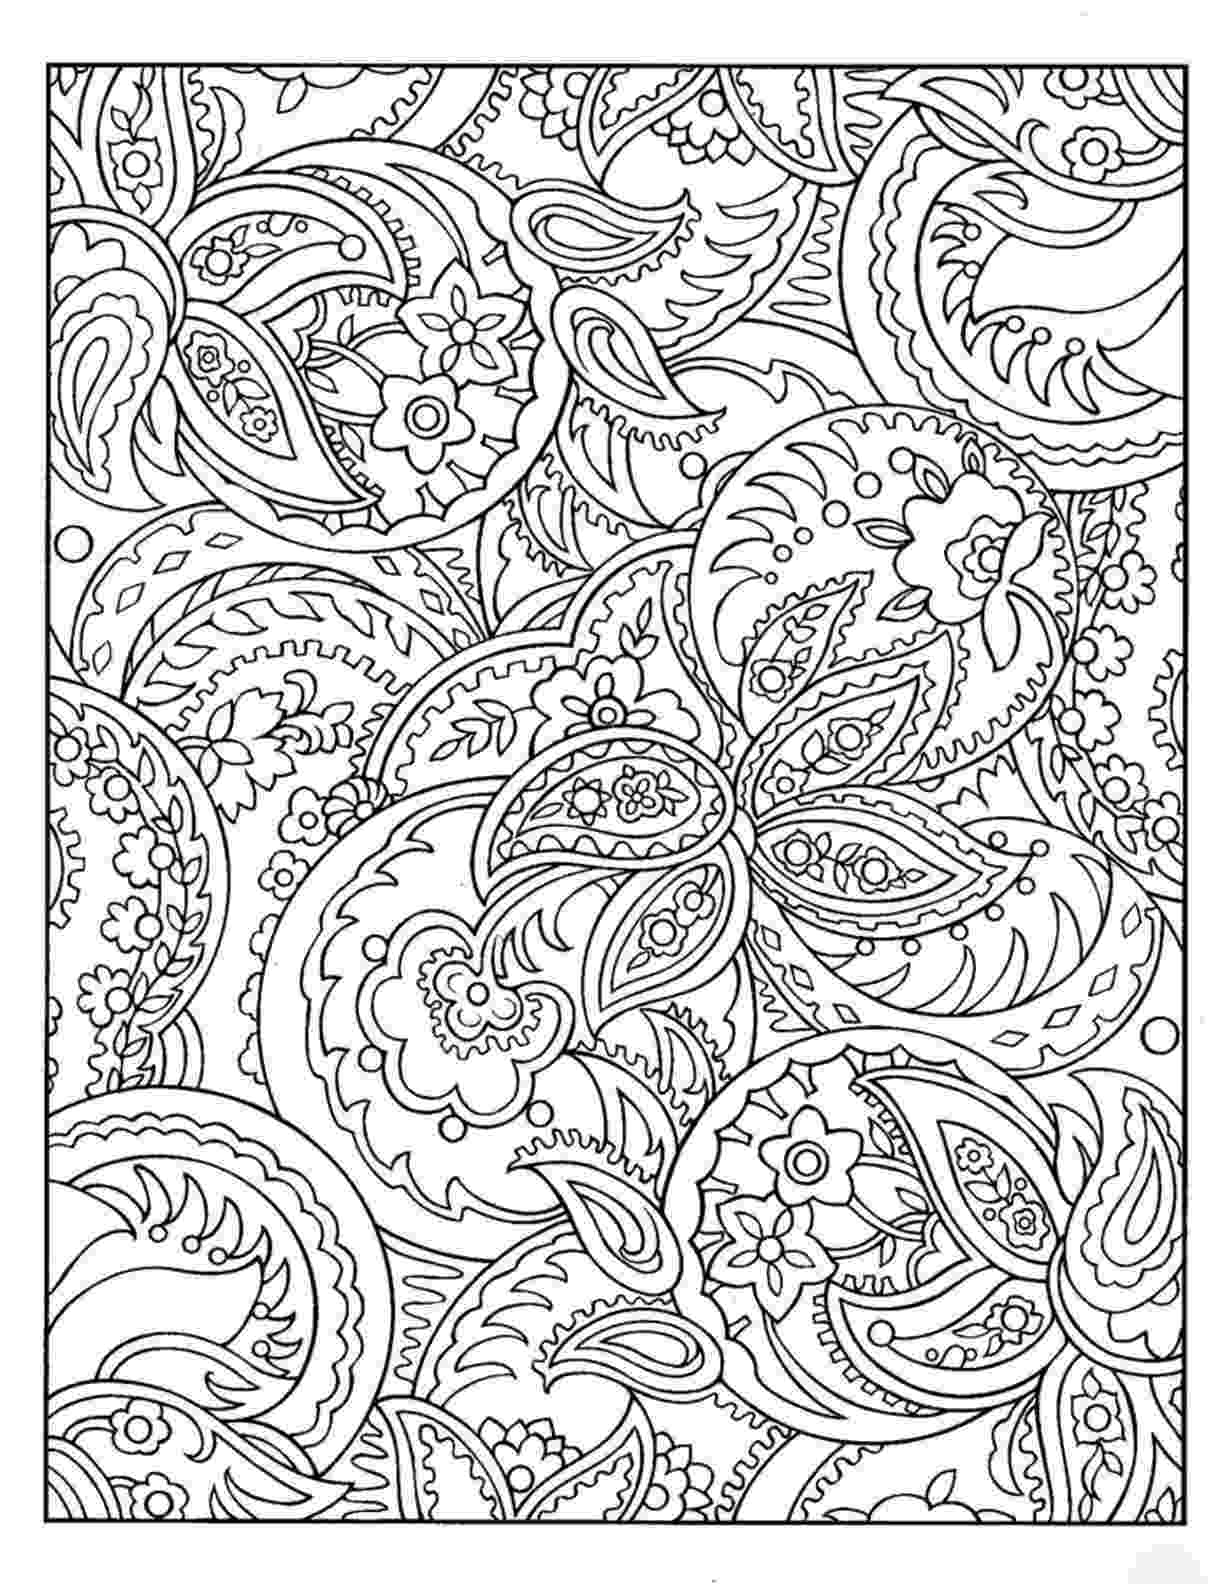 pattern colouring pages rug hooking paper pattern abstract paisley folk art unique colouring pages pattern